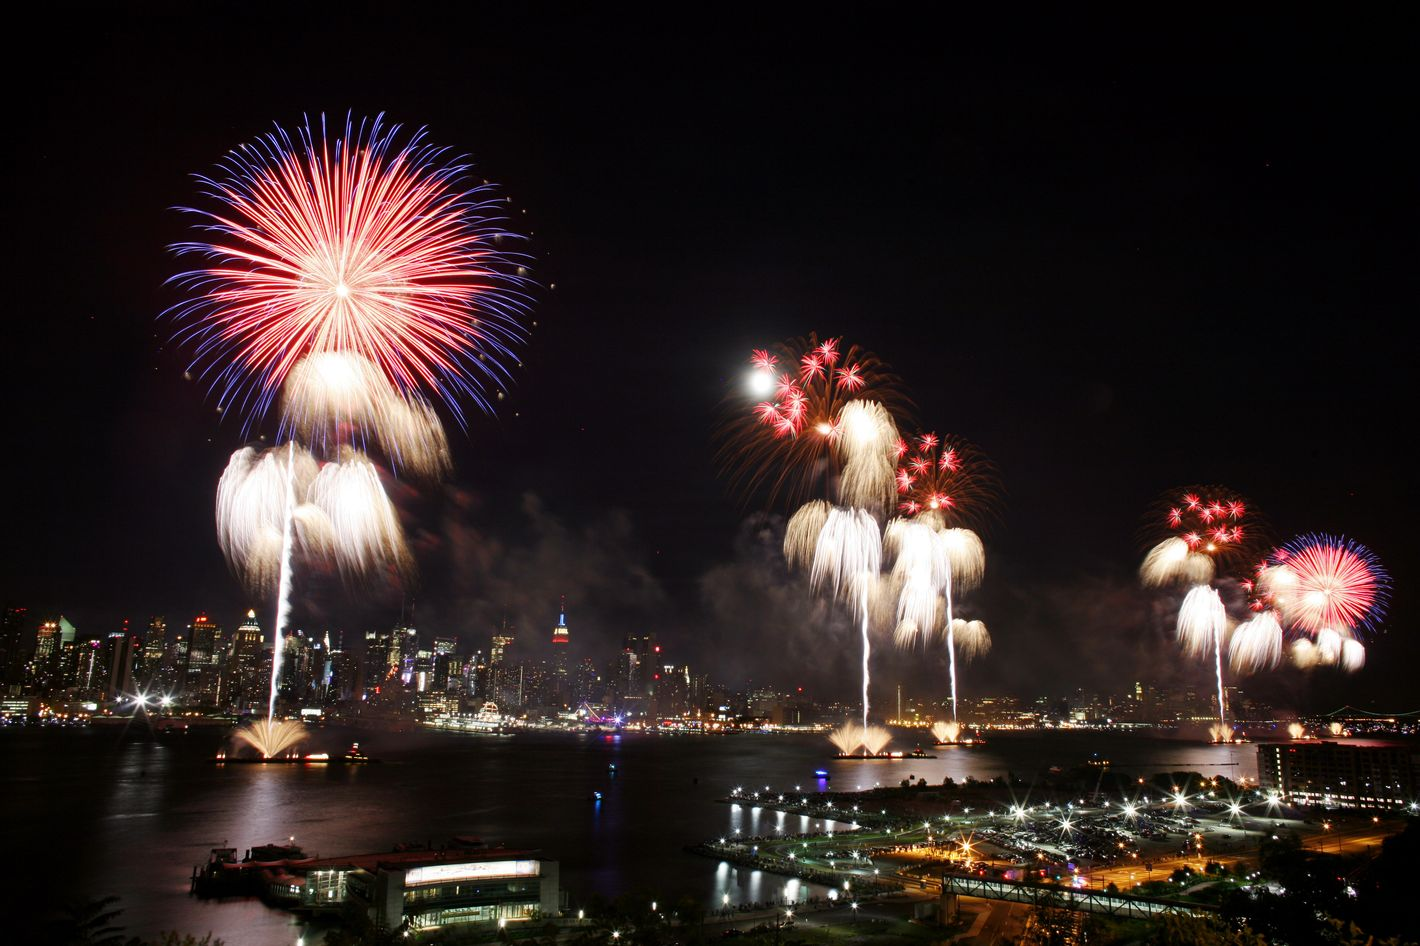 The New York City skyline is seen in the distance as fireworks explode over the Hudson River during the Macy's fireworks display July 4, 2009 in Weehawken, New Jersey.  It was the first time since 2000 that the Macy's display took place over the Hudson River and not the East River.